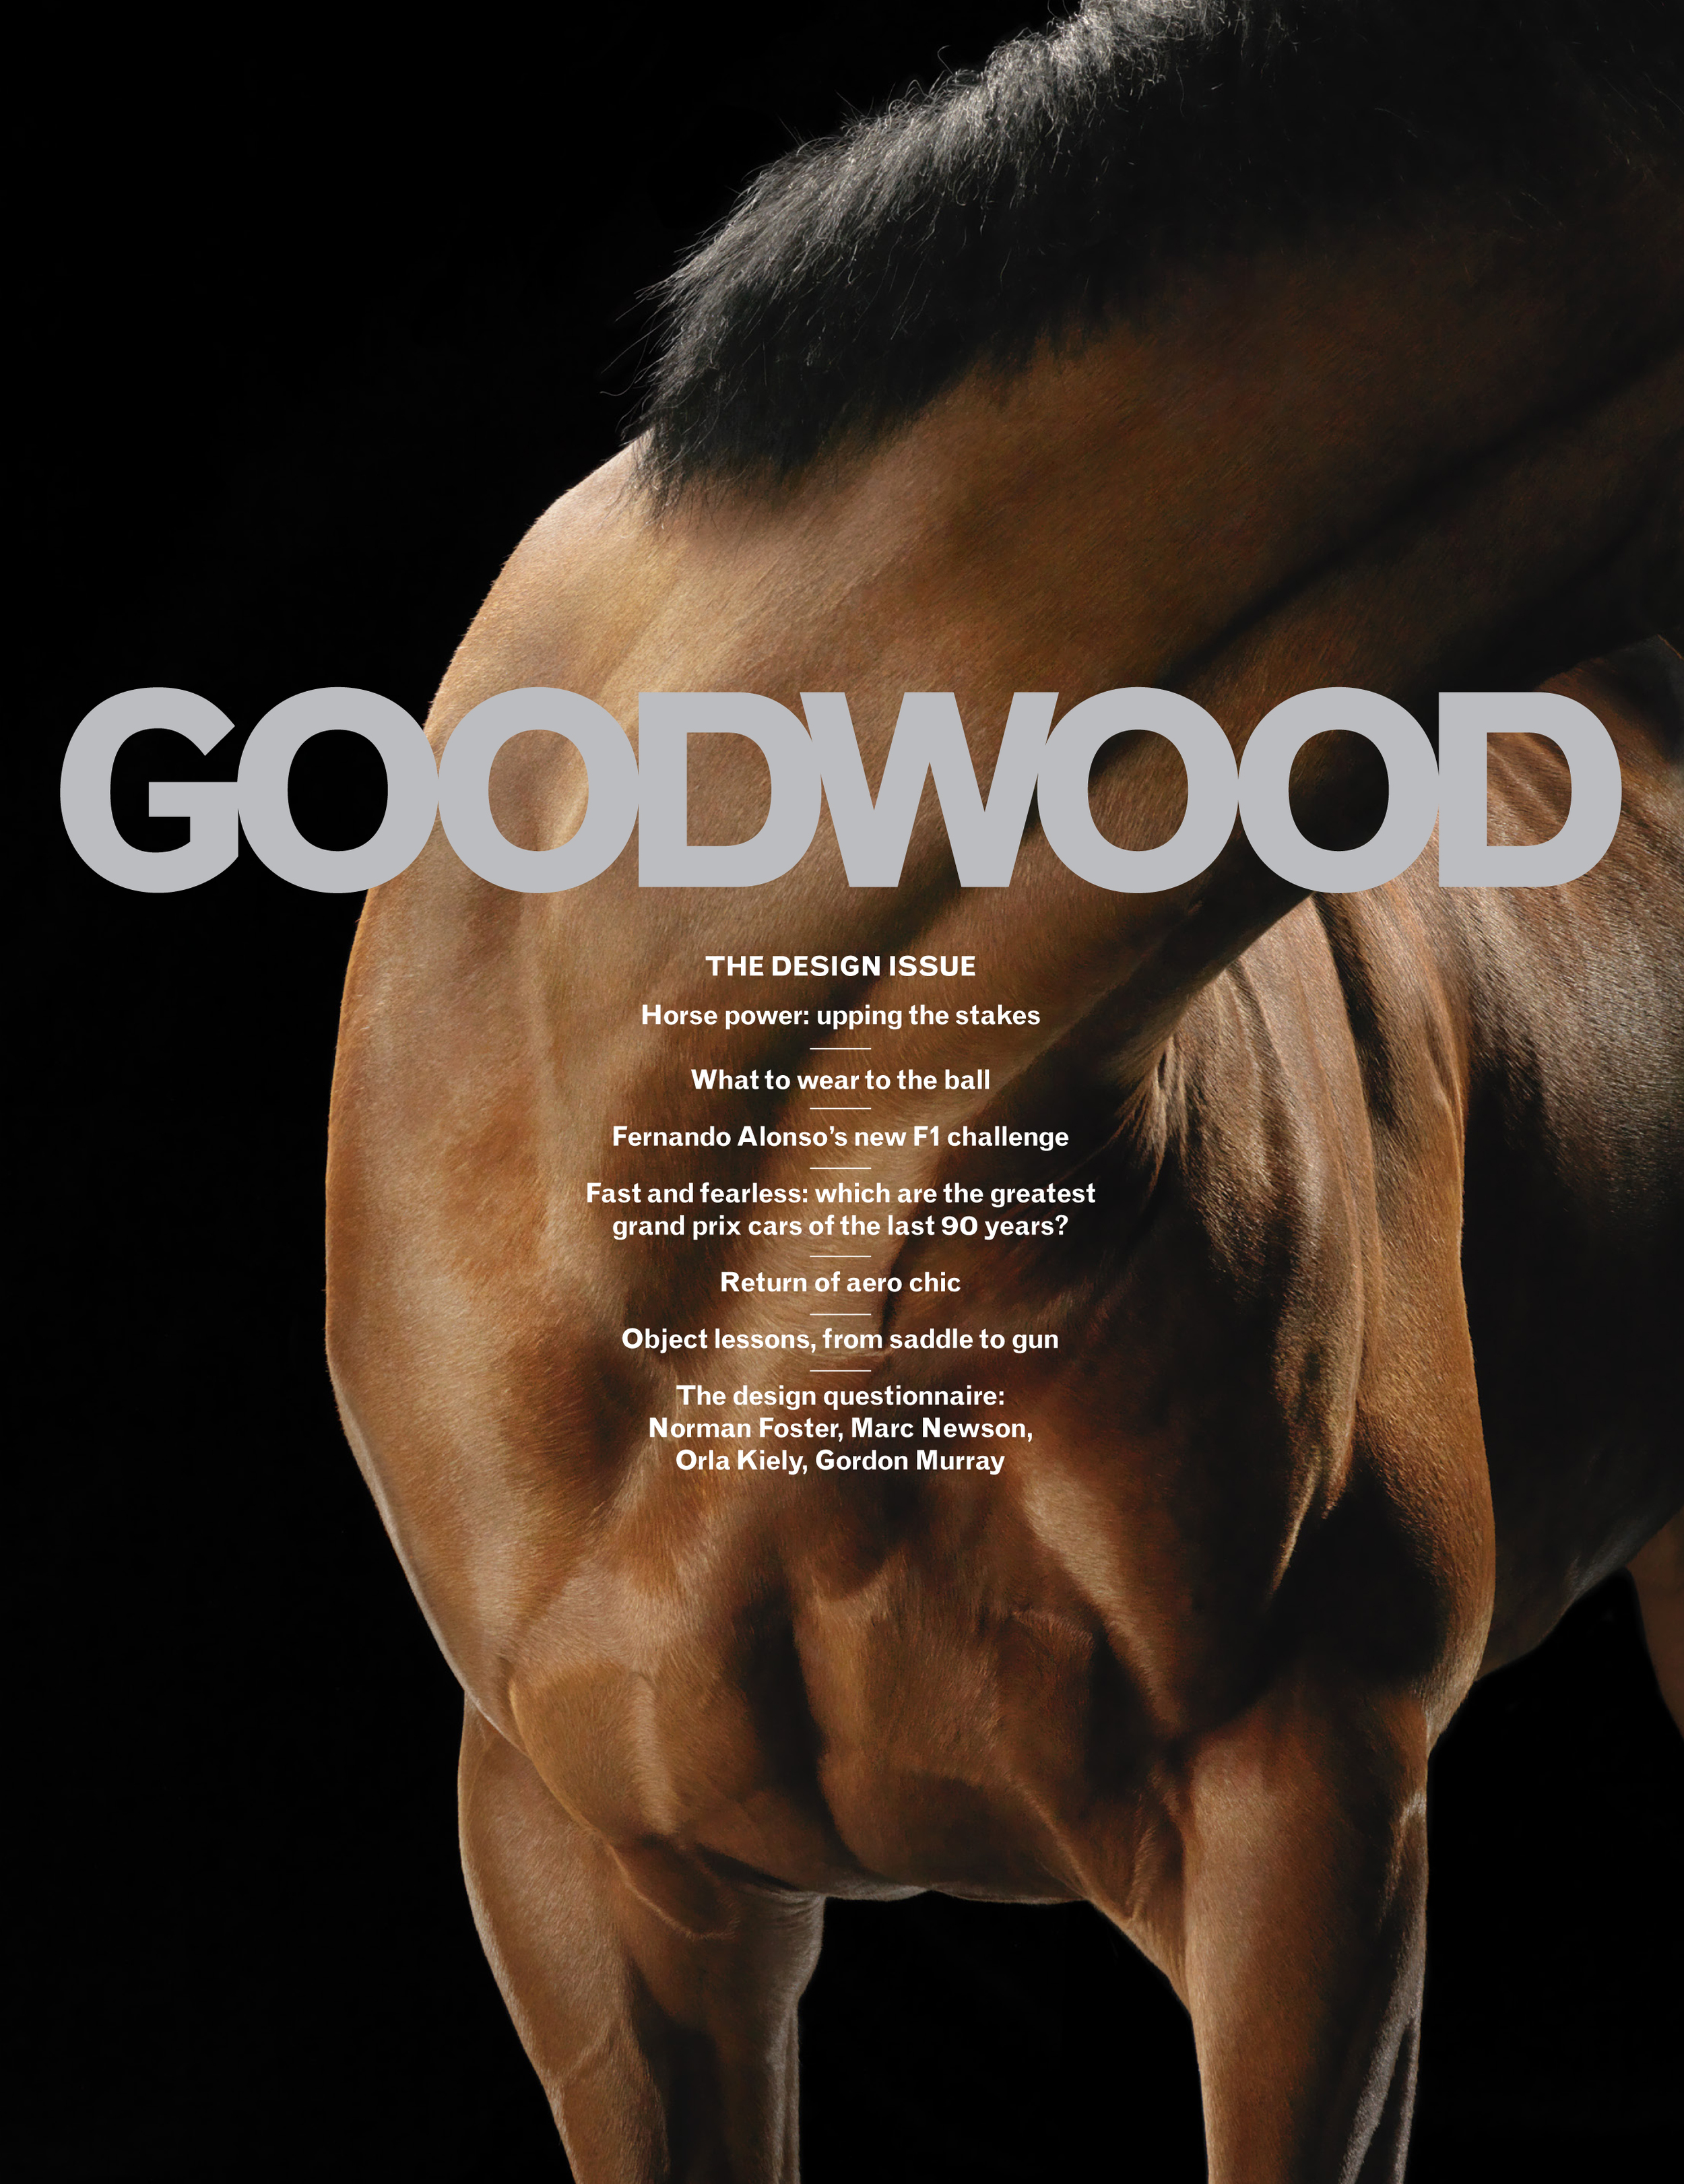 Goodwood_Inthedoghouse-1-CROP 2.jpg